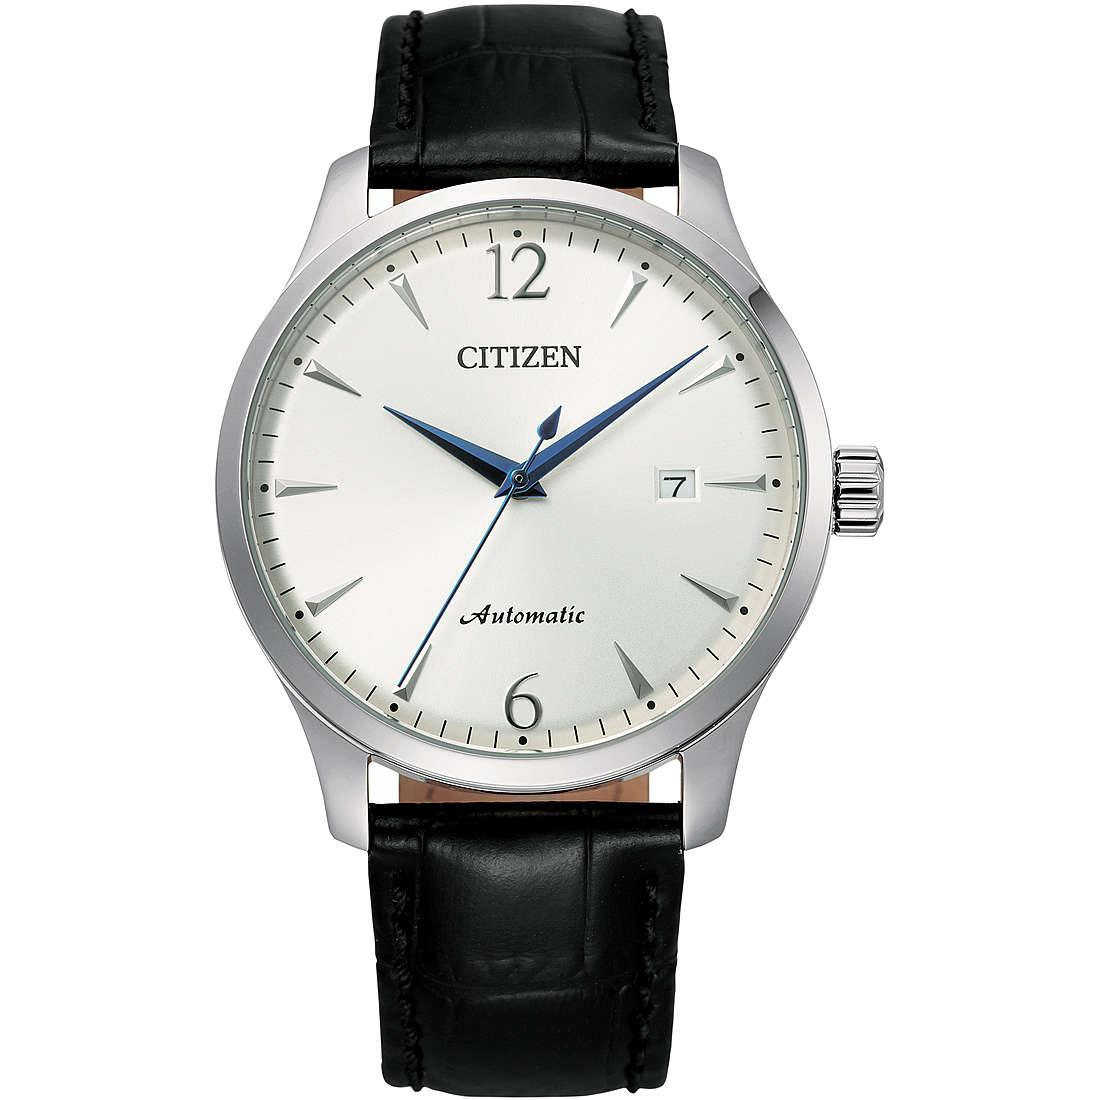 Orologio Automatico uomo Citizen NJ0110-18A Of Collection 2020